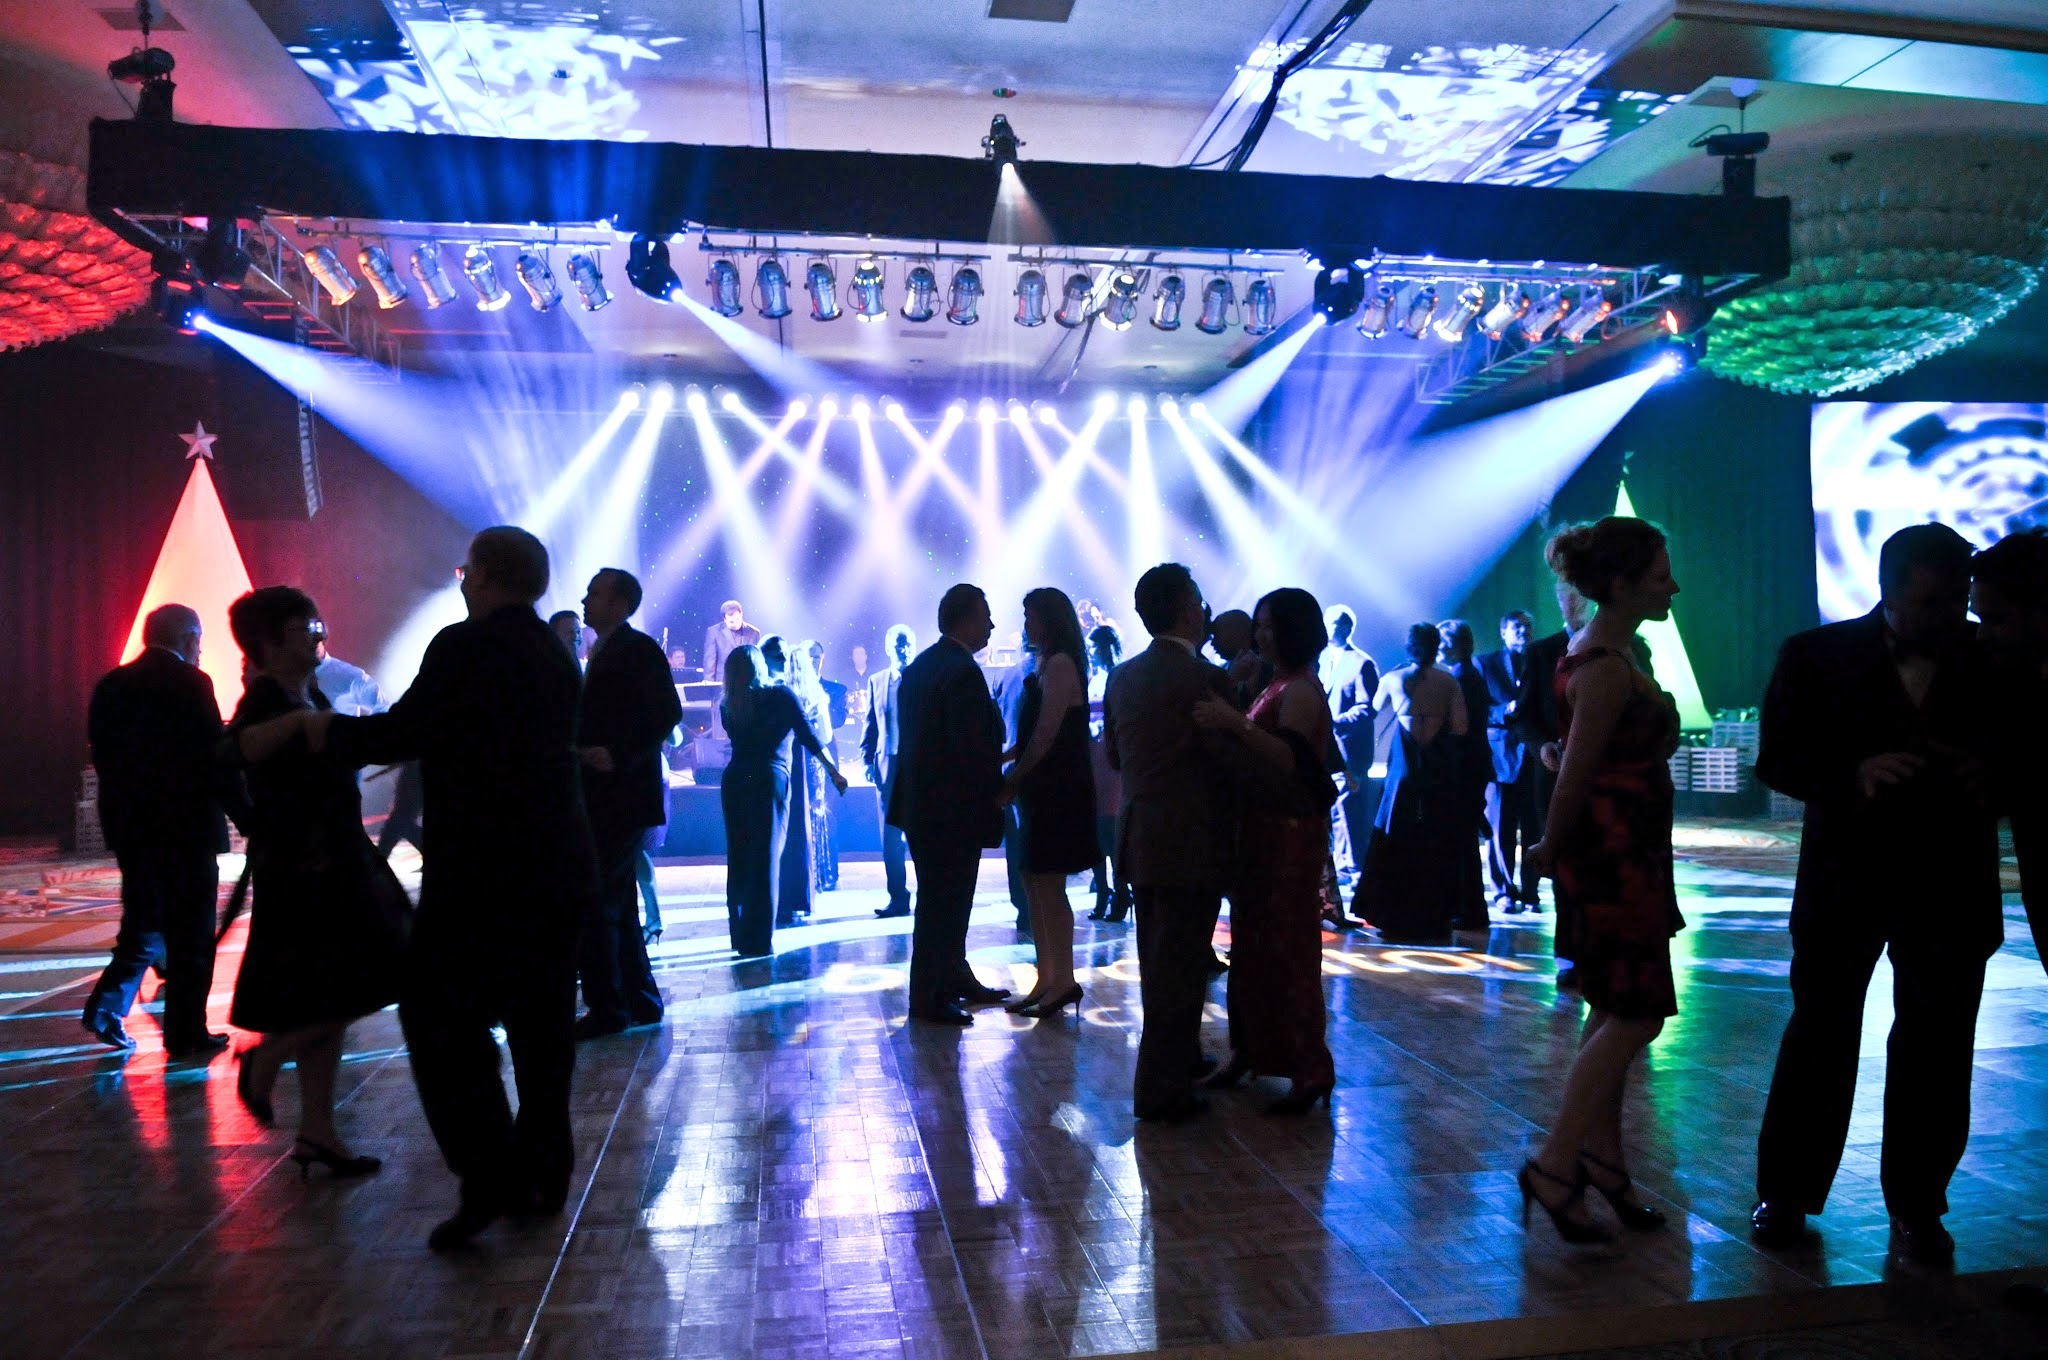 A great venue will have your guests dancing the night away!